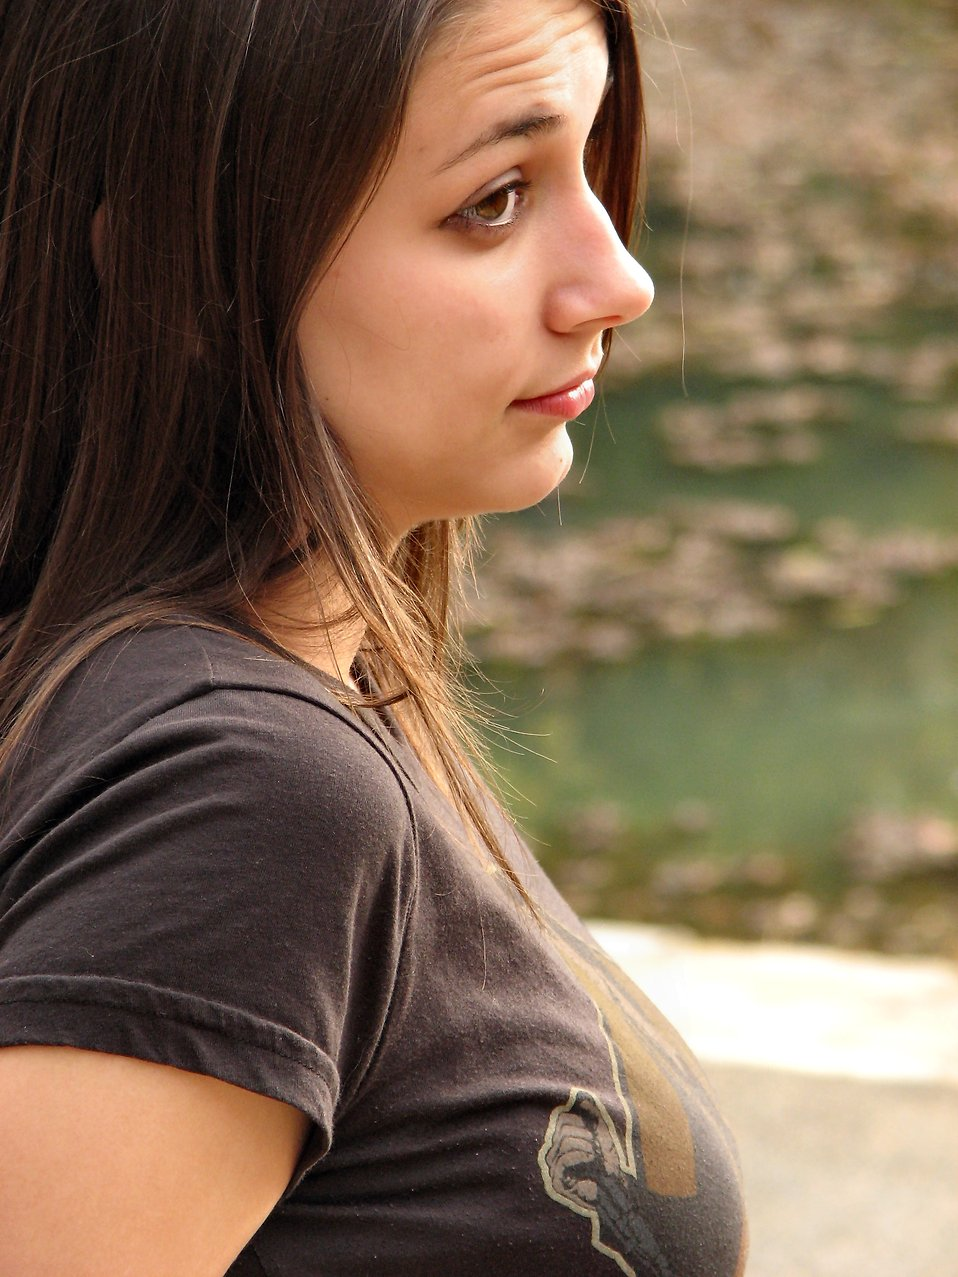 Outdoor portrait of a teen girl : Free Stock Photo